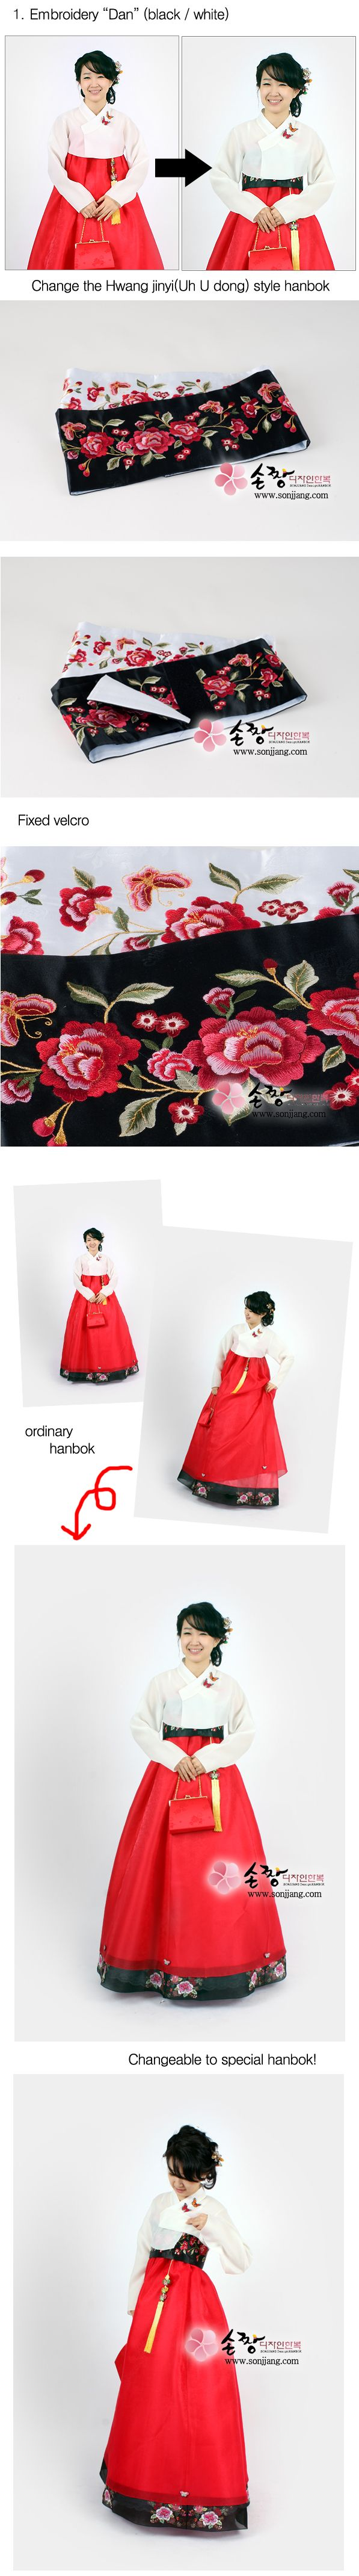 Tag cloud        Long dresses      Mini dresses       Categories        Occasion HANBOK dresses      Adult Hanbok      Couple (men) HANBOK      Casual hanbok      Wedding ceremony dress      Kids HANBOK      Accessories      Korean fabrics      Personal space    Information        Handling time cost      How to measurement      About sonjjang-hanbok      Photo from customer      Poll of the week      What is HANBOK?      Contact us       Site news        09/05/2011 Delay